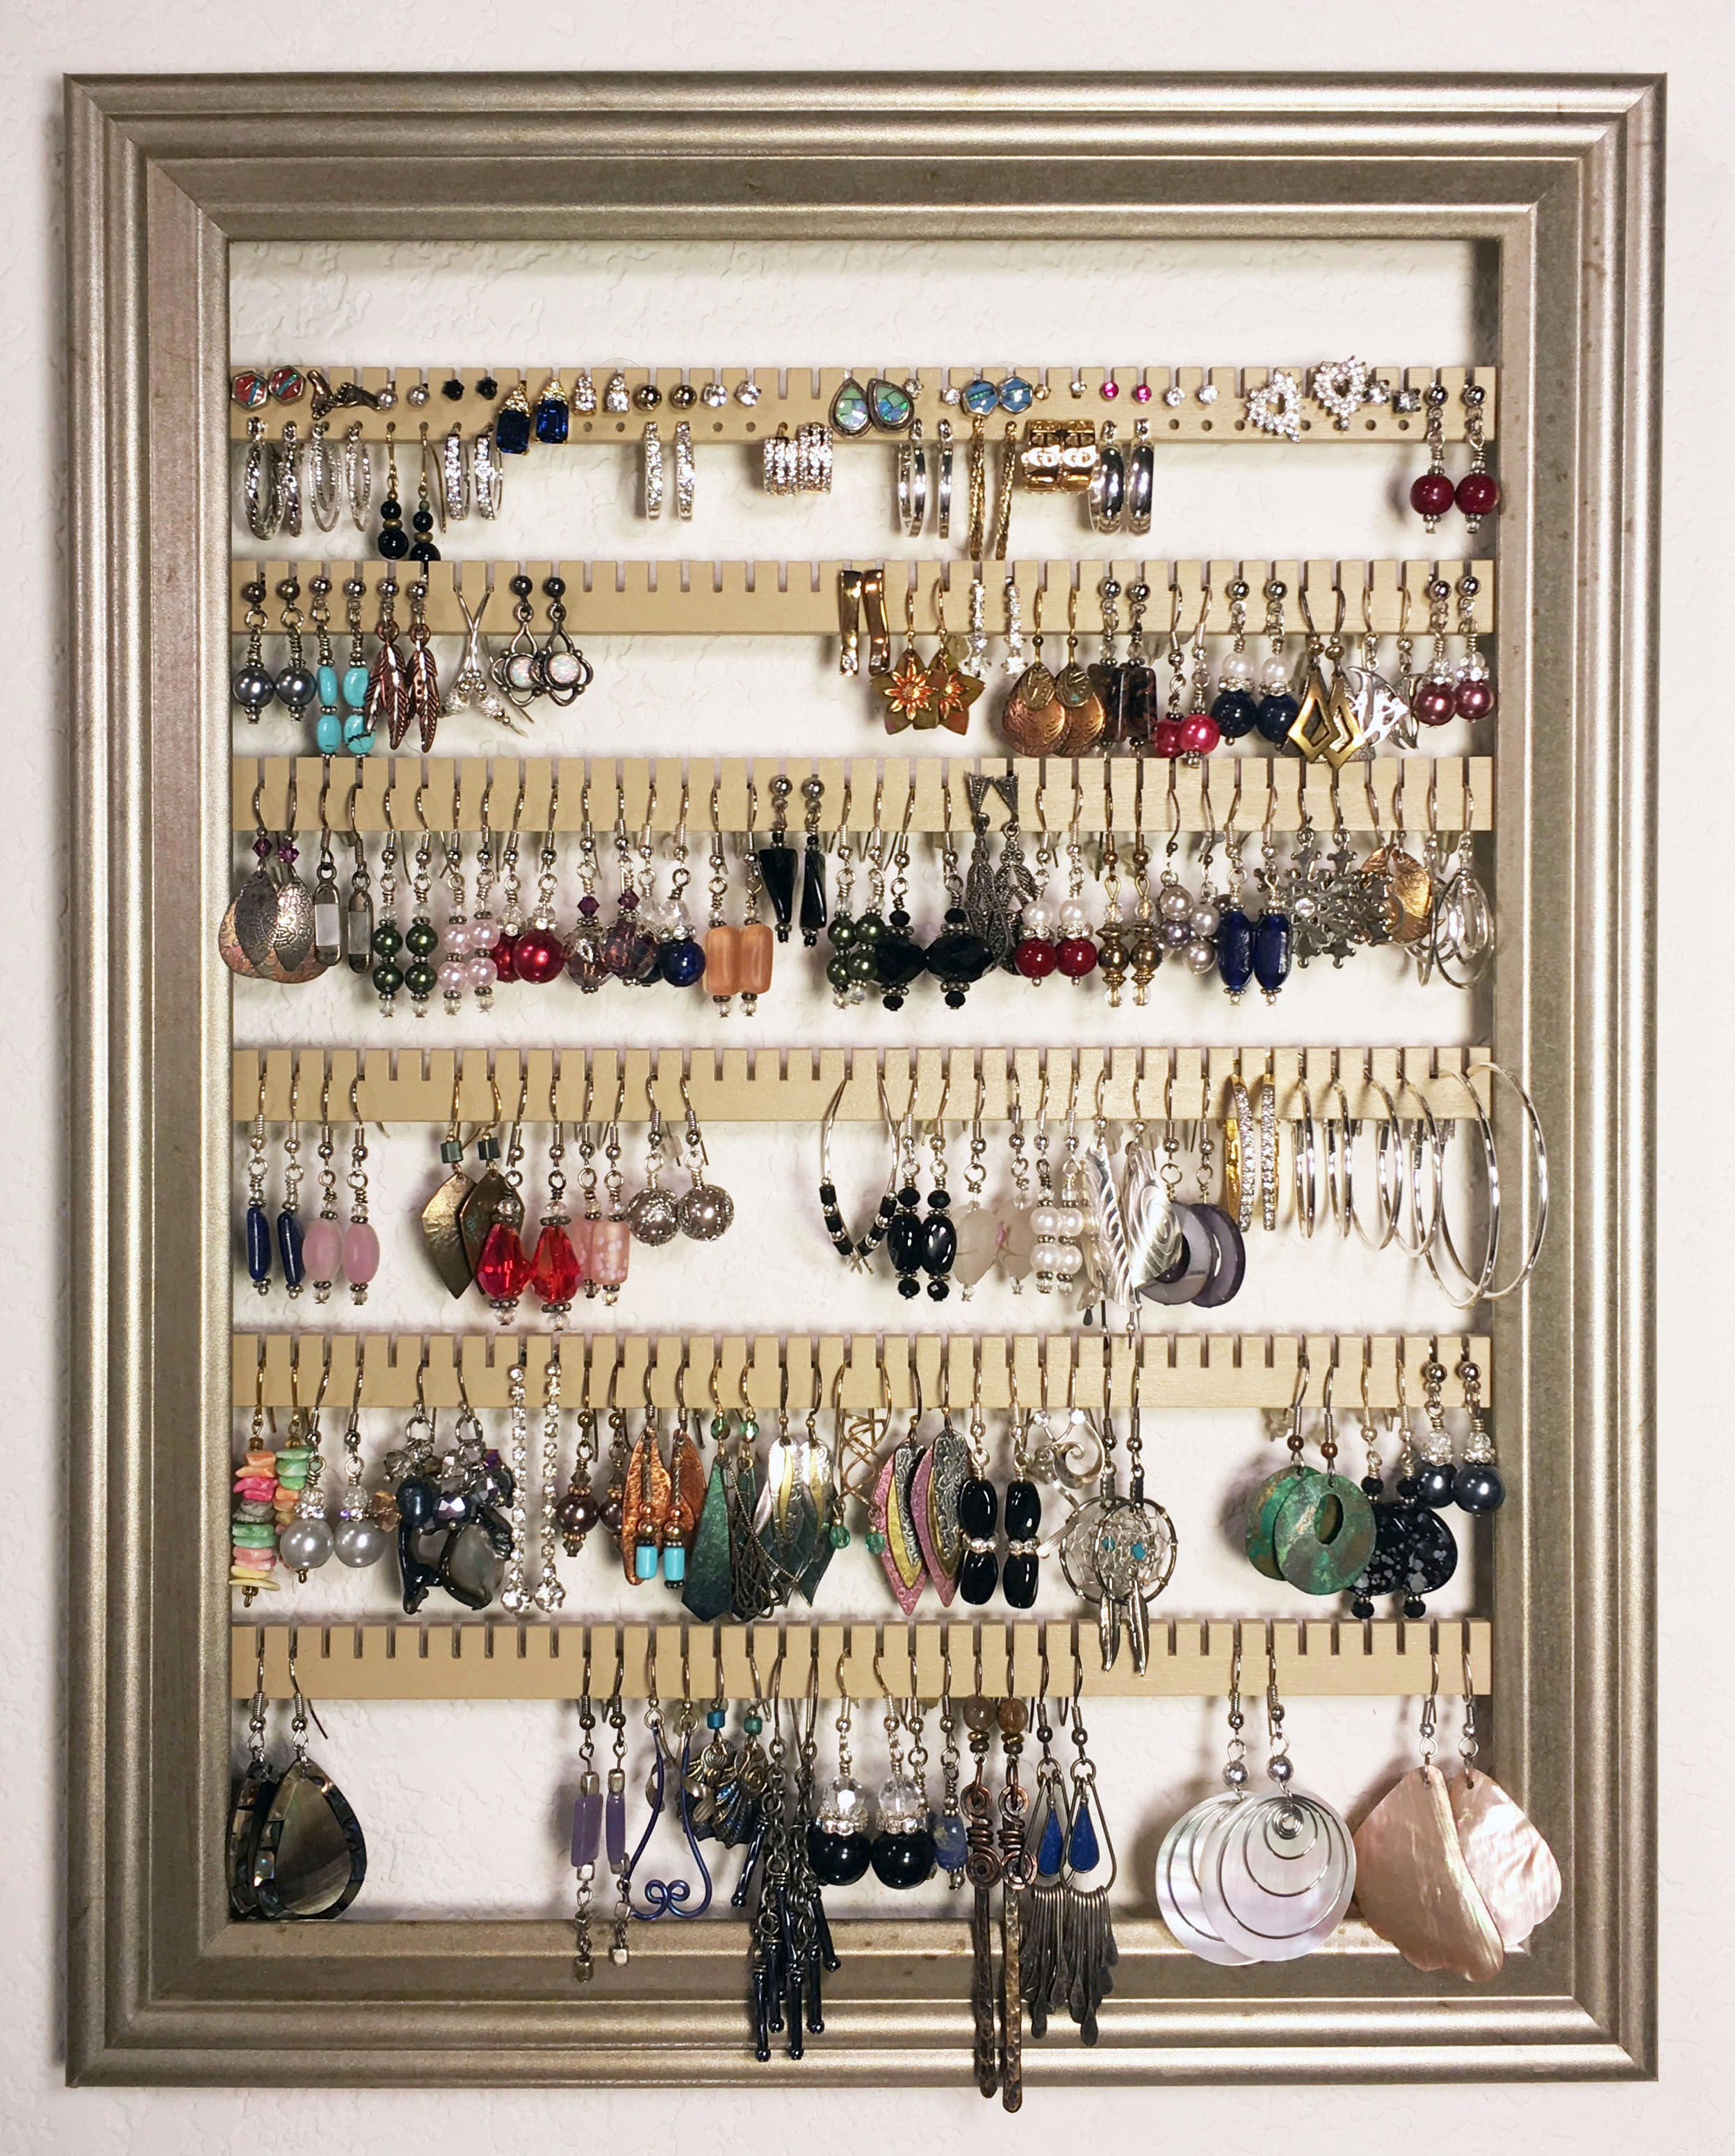 Earring Holder 228 Slots For Earrings 38 Holes Holds 133 Pair If You Used Every Slot Hanging Jewelry Hanging Picture Frames Earring Holder Picture Frame